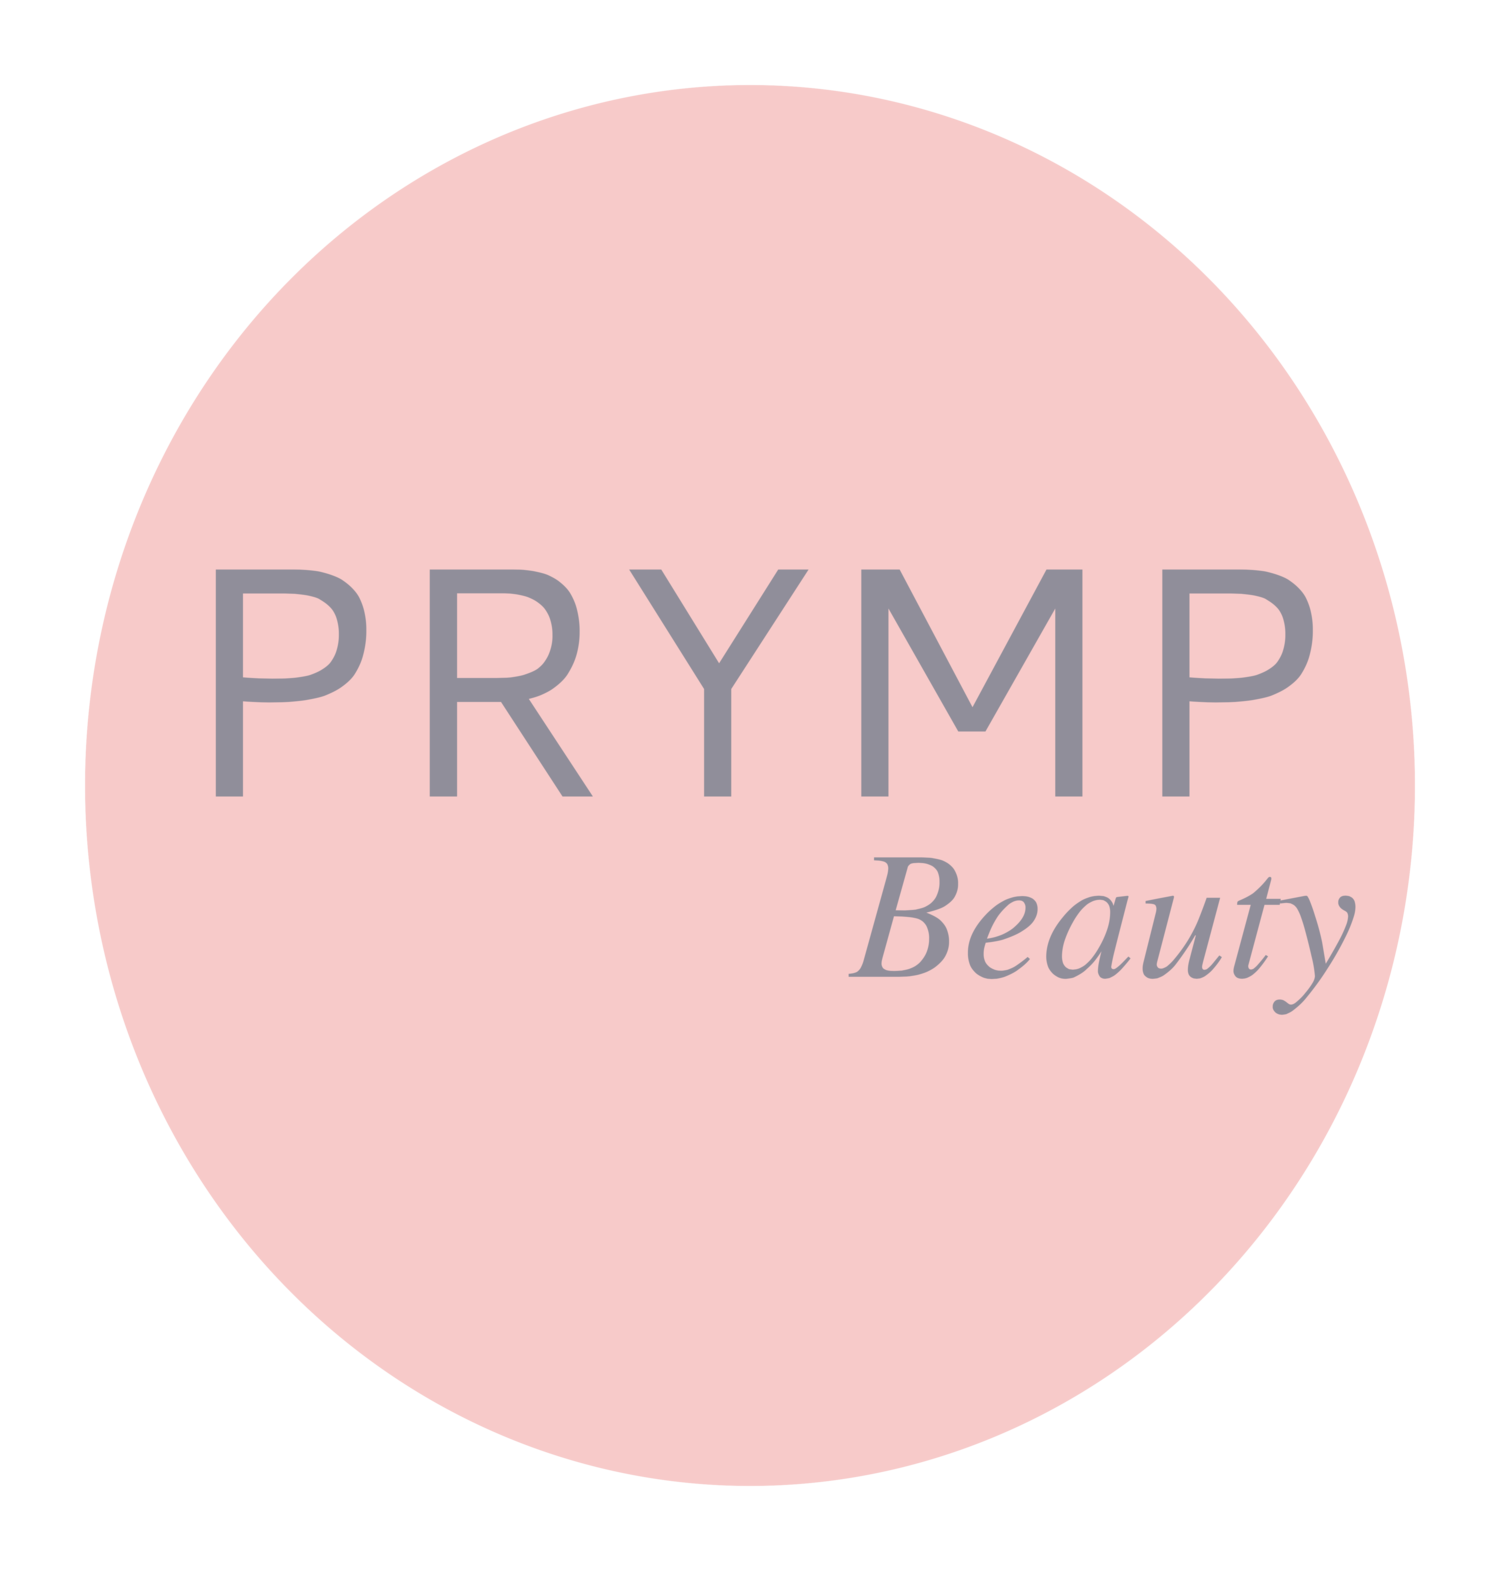 PRYMP Beauty